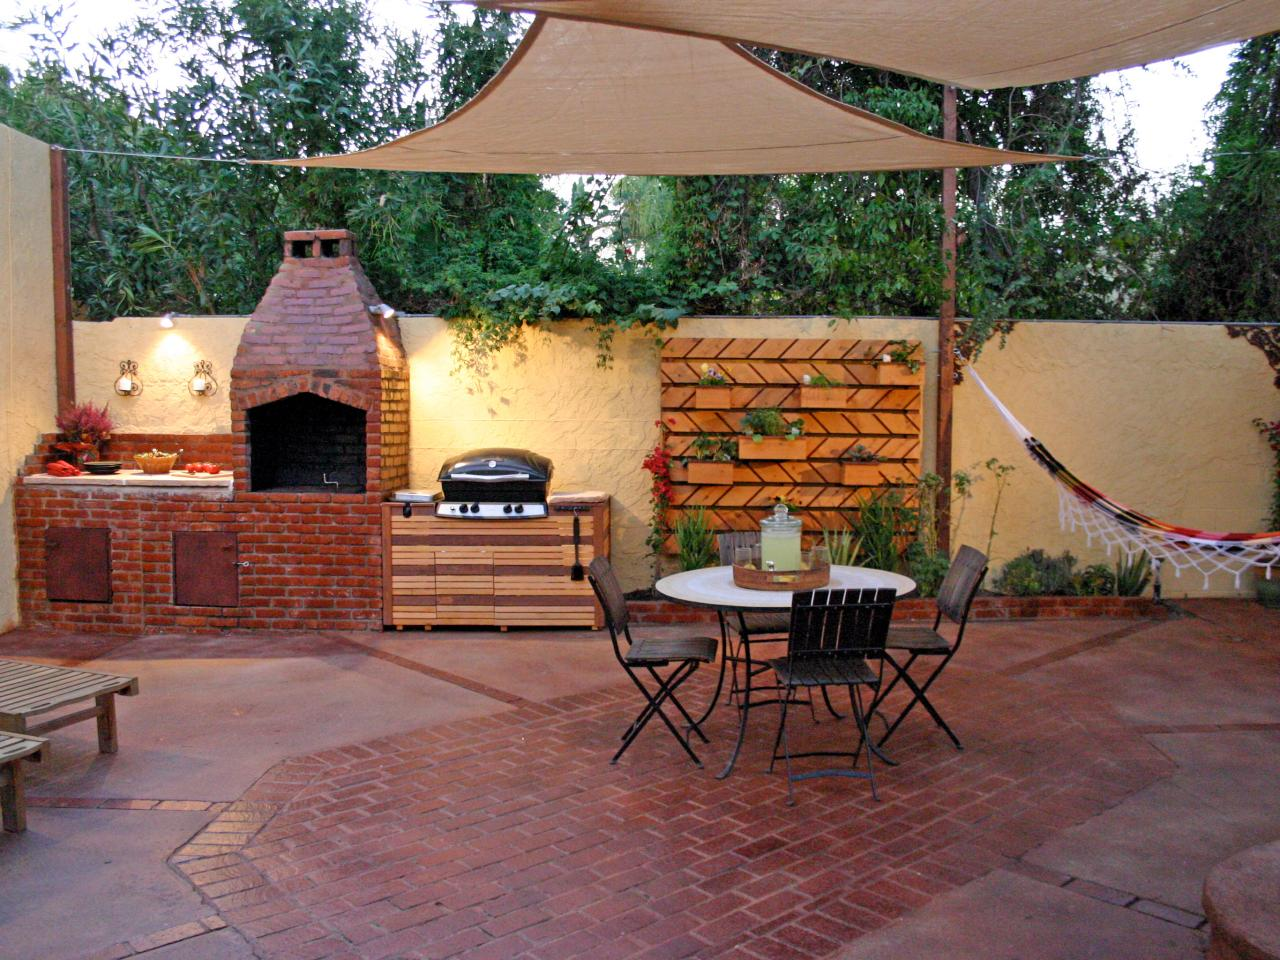 Small Outdoor Kitchen Ideas: Pictures, Tips & Expert Advice | HGTV